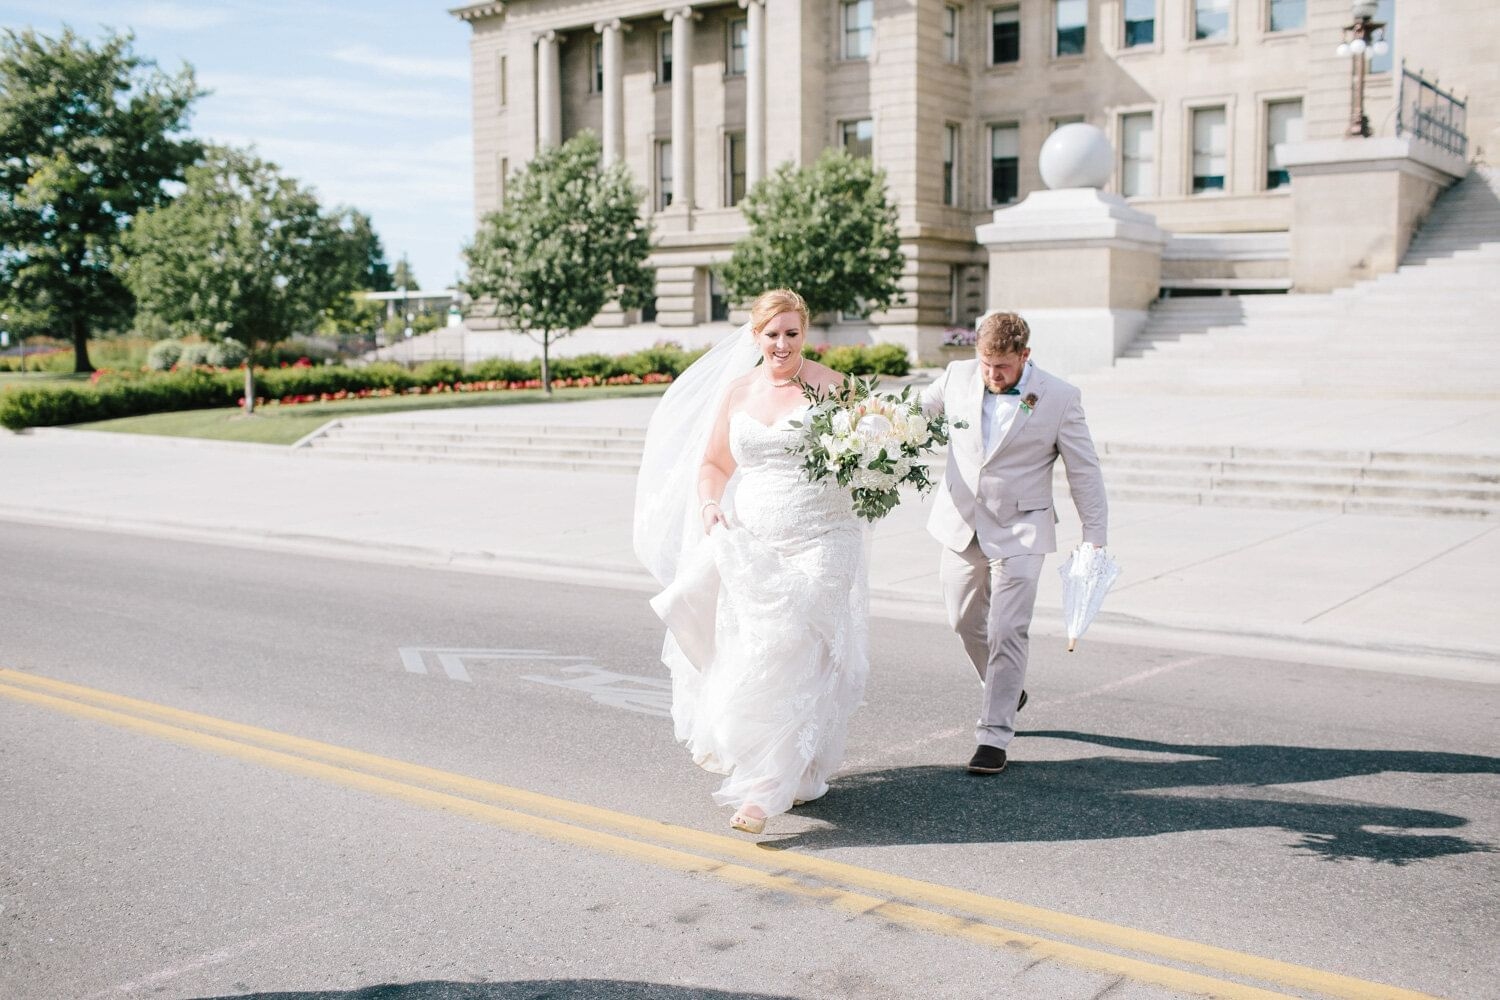 a bride and groom walking across a street